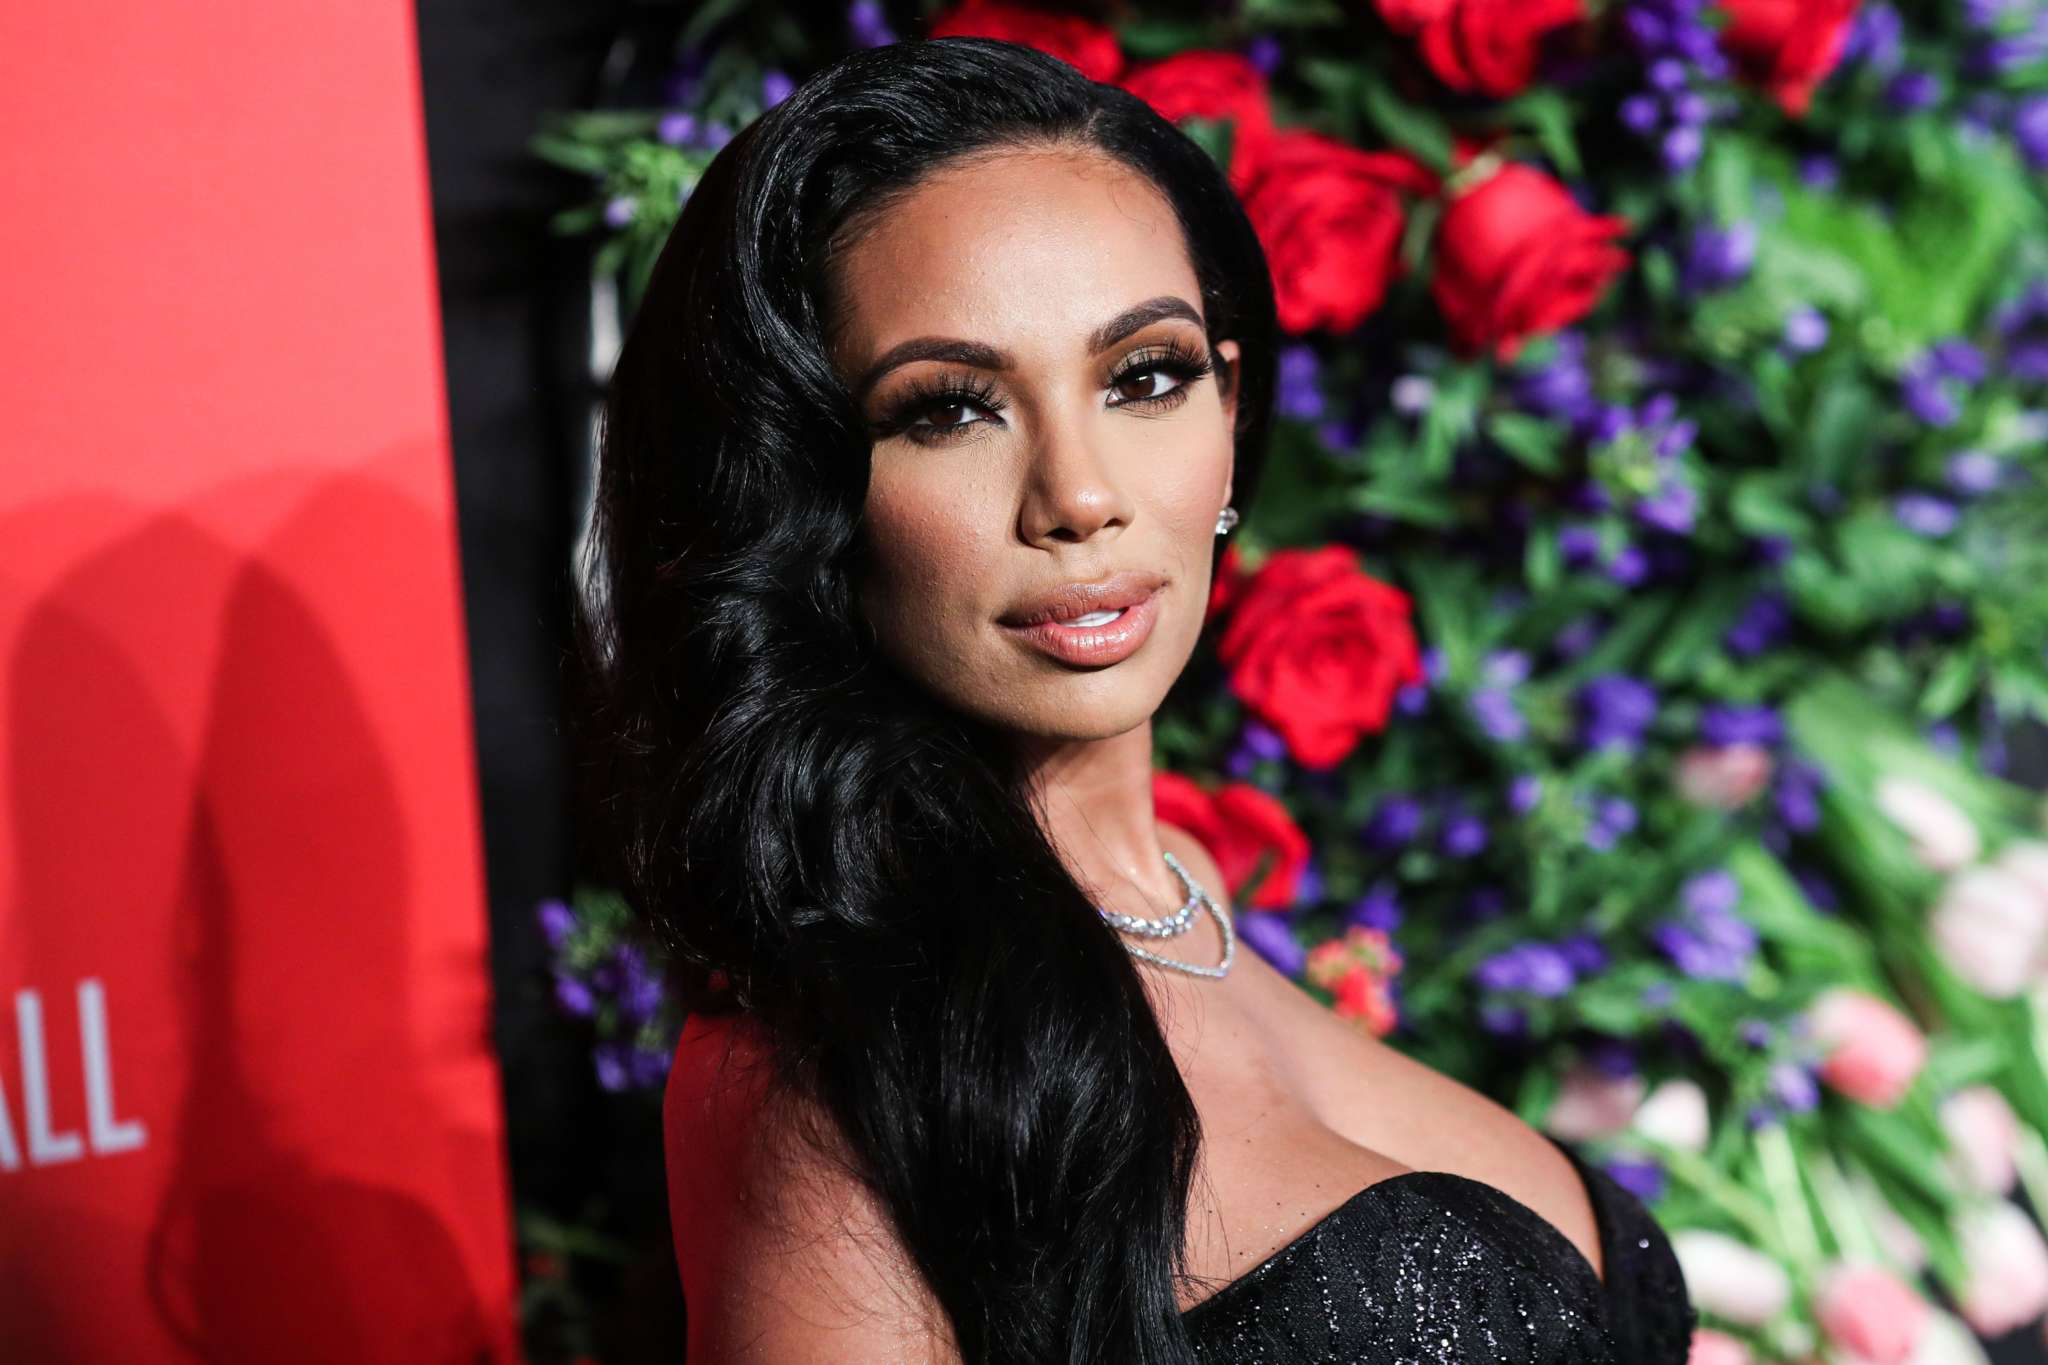 Erica Mena Drops A Surprise For Her Fans On Social Media